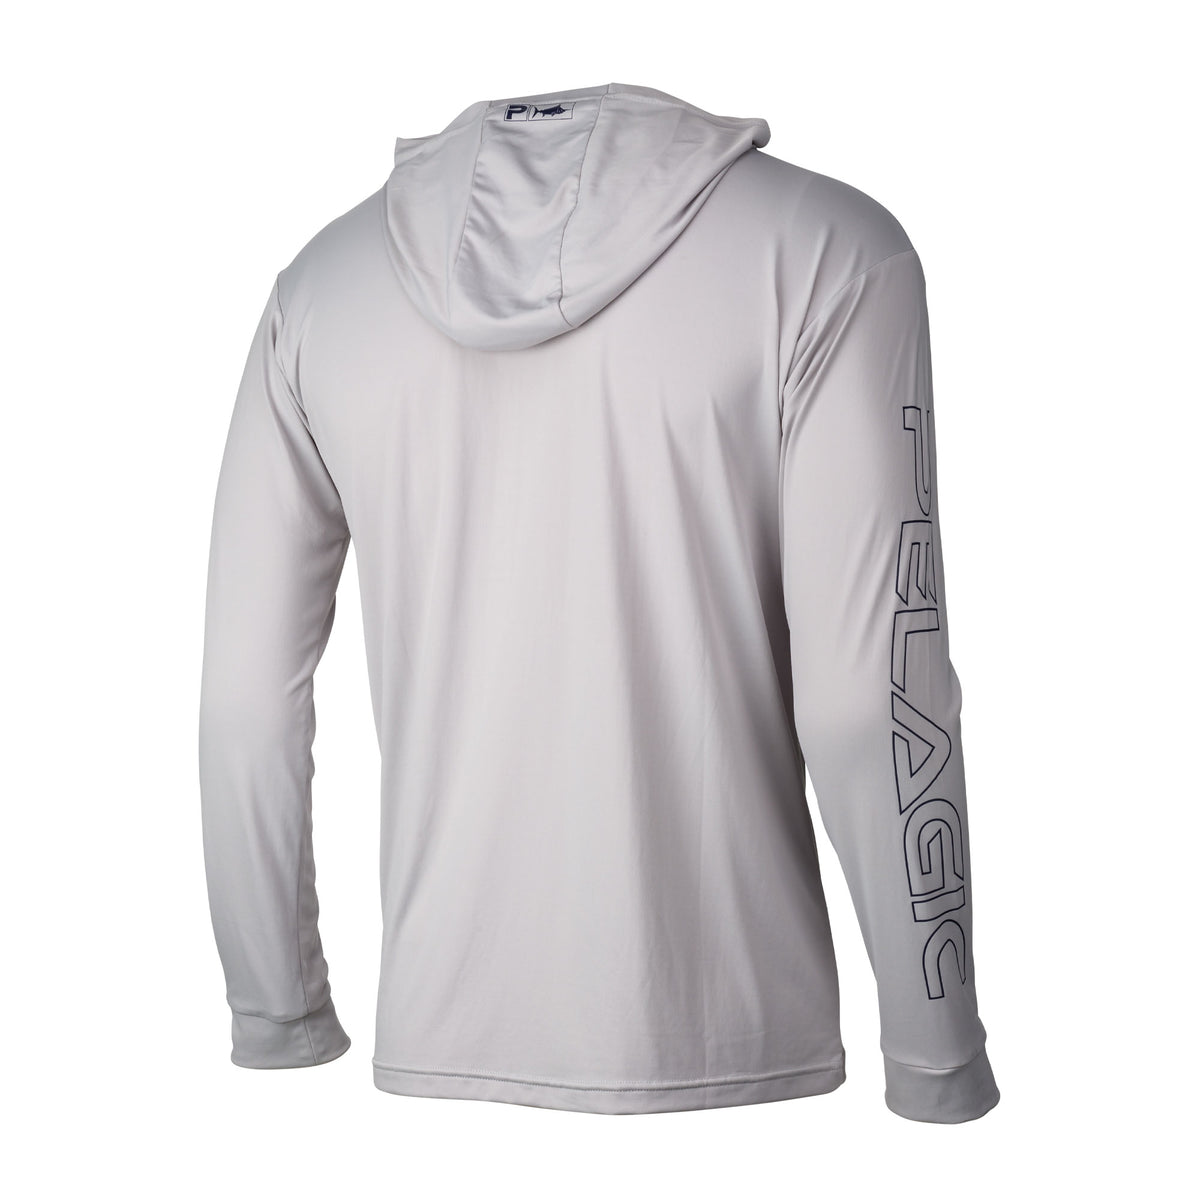 Aquatek Hooded Fishing Shirt Big Image - 2